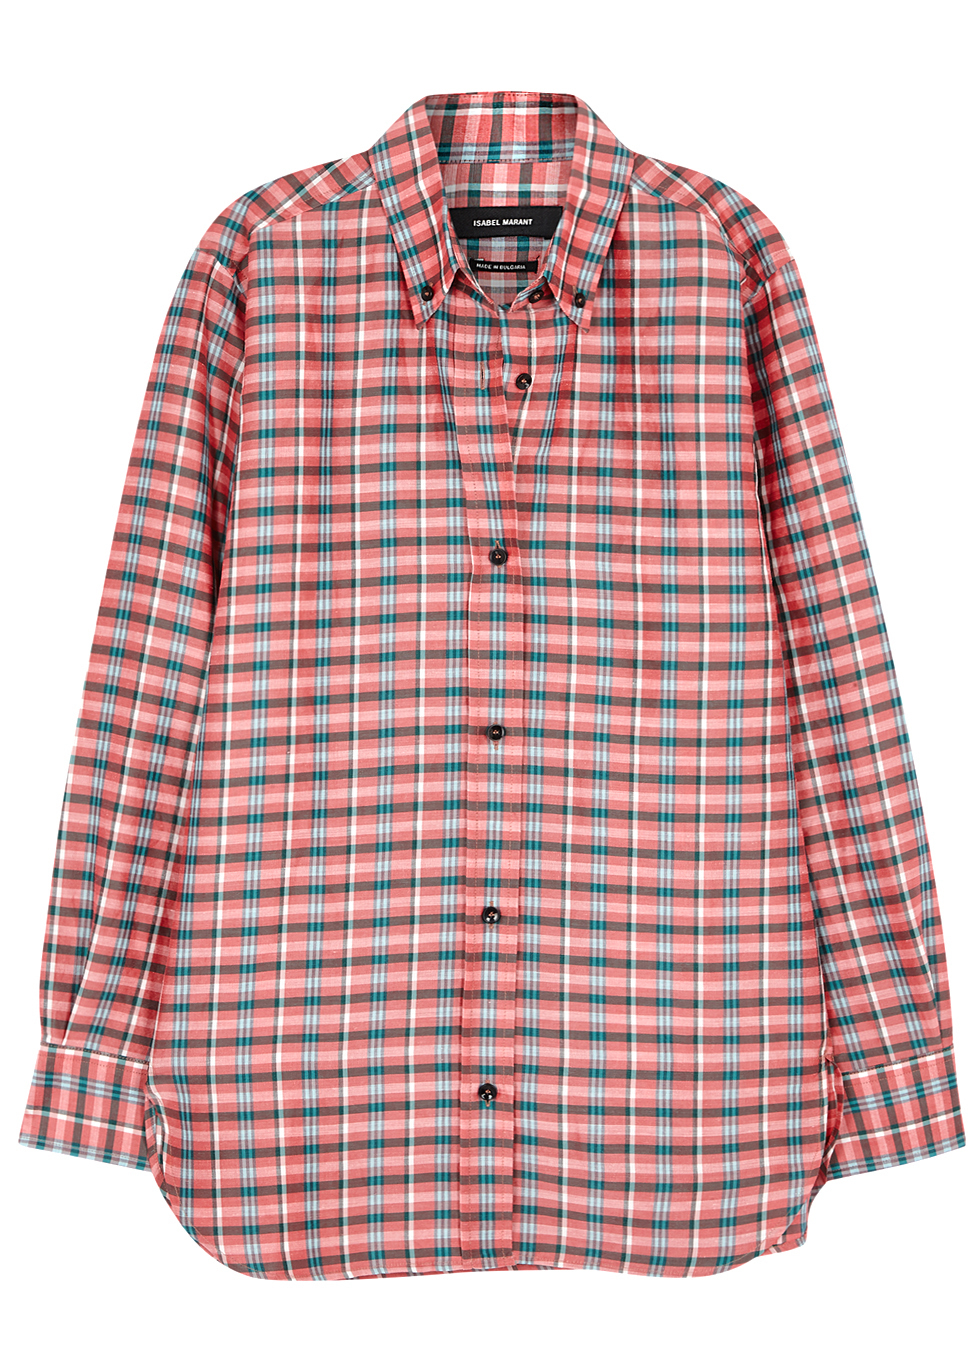 Manray Checked Ramie Blend Shirt - neckline: shirt collar/peter pan/zip with opening; pattern: checked/gingham; style: shirt; predominant colour: pink; secondary colour: charcoal; occasions: casual; length: standard; fibres: silk - mix; fit: body skimming; sleeve length: long sleeve; sleeve style: standard; texture group: silky - light; pattern type: fabric; pattern size: standard; multicoloured: multicoloured; season: a/w 2016; wardrobe: highlight